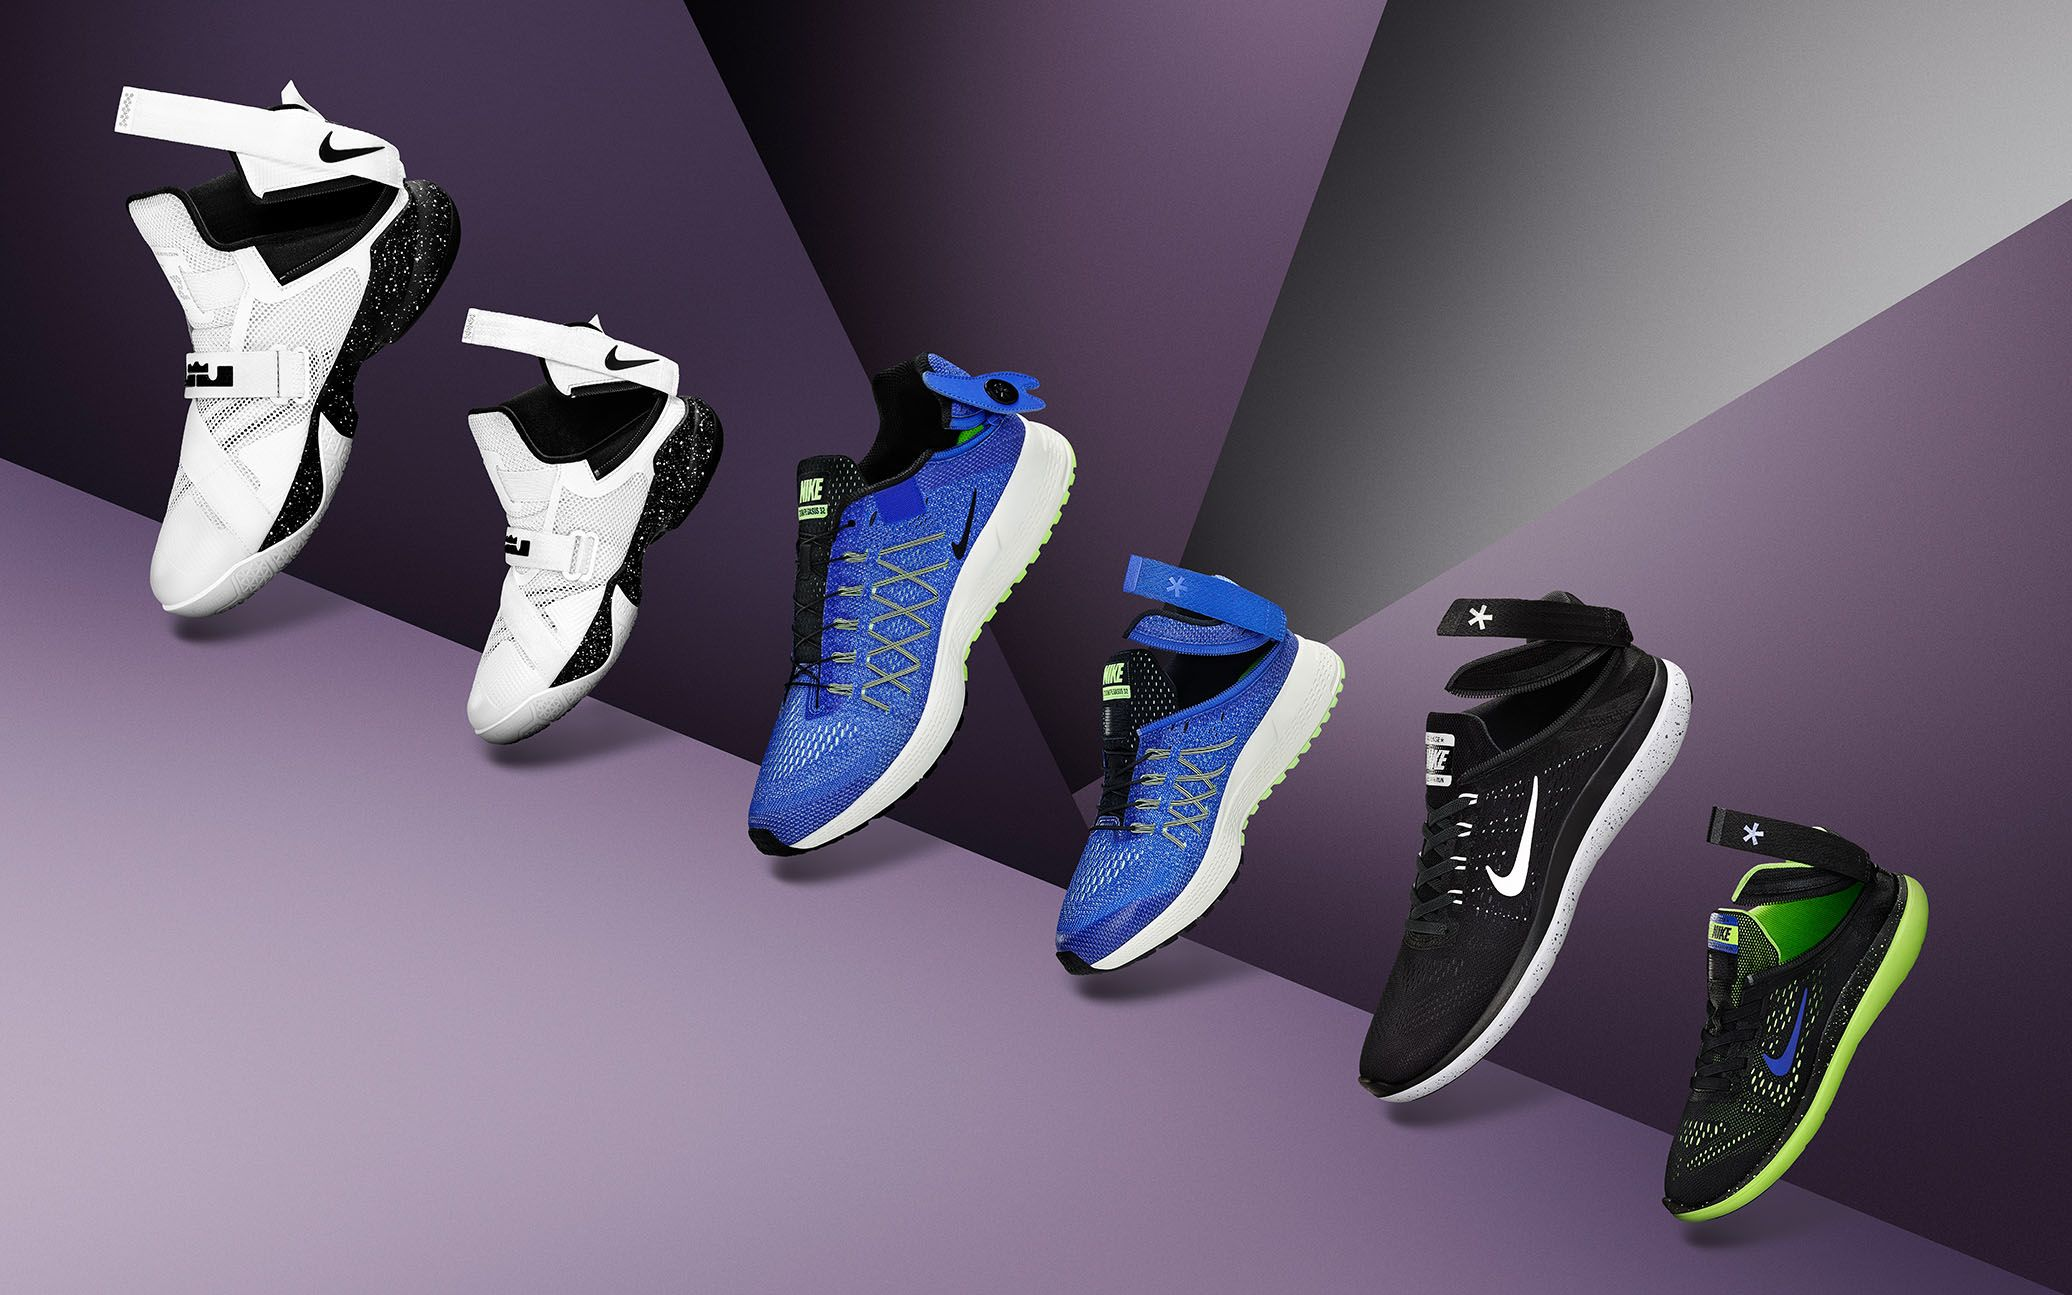 Nike is adding to its lineup of sneakers designed specifically for people  with disabilities, with